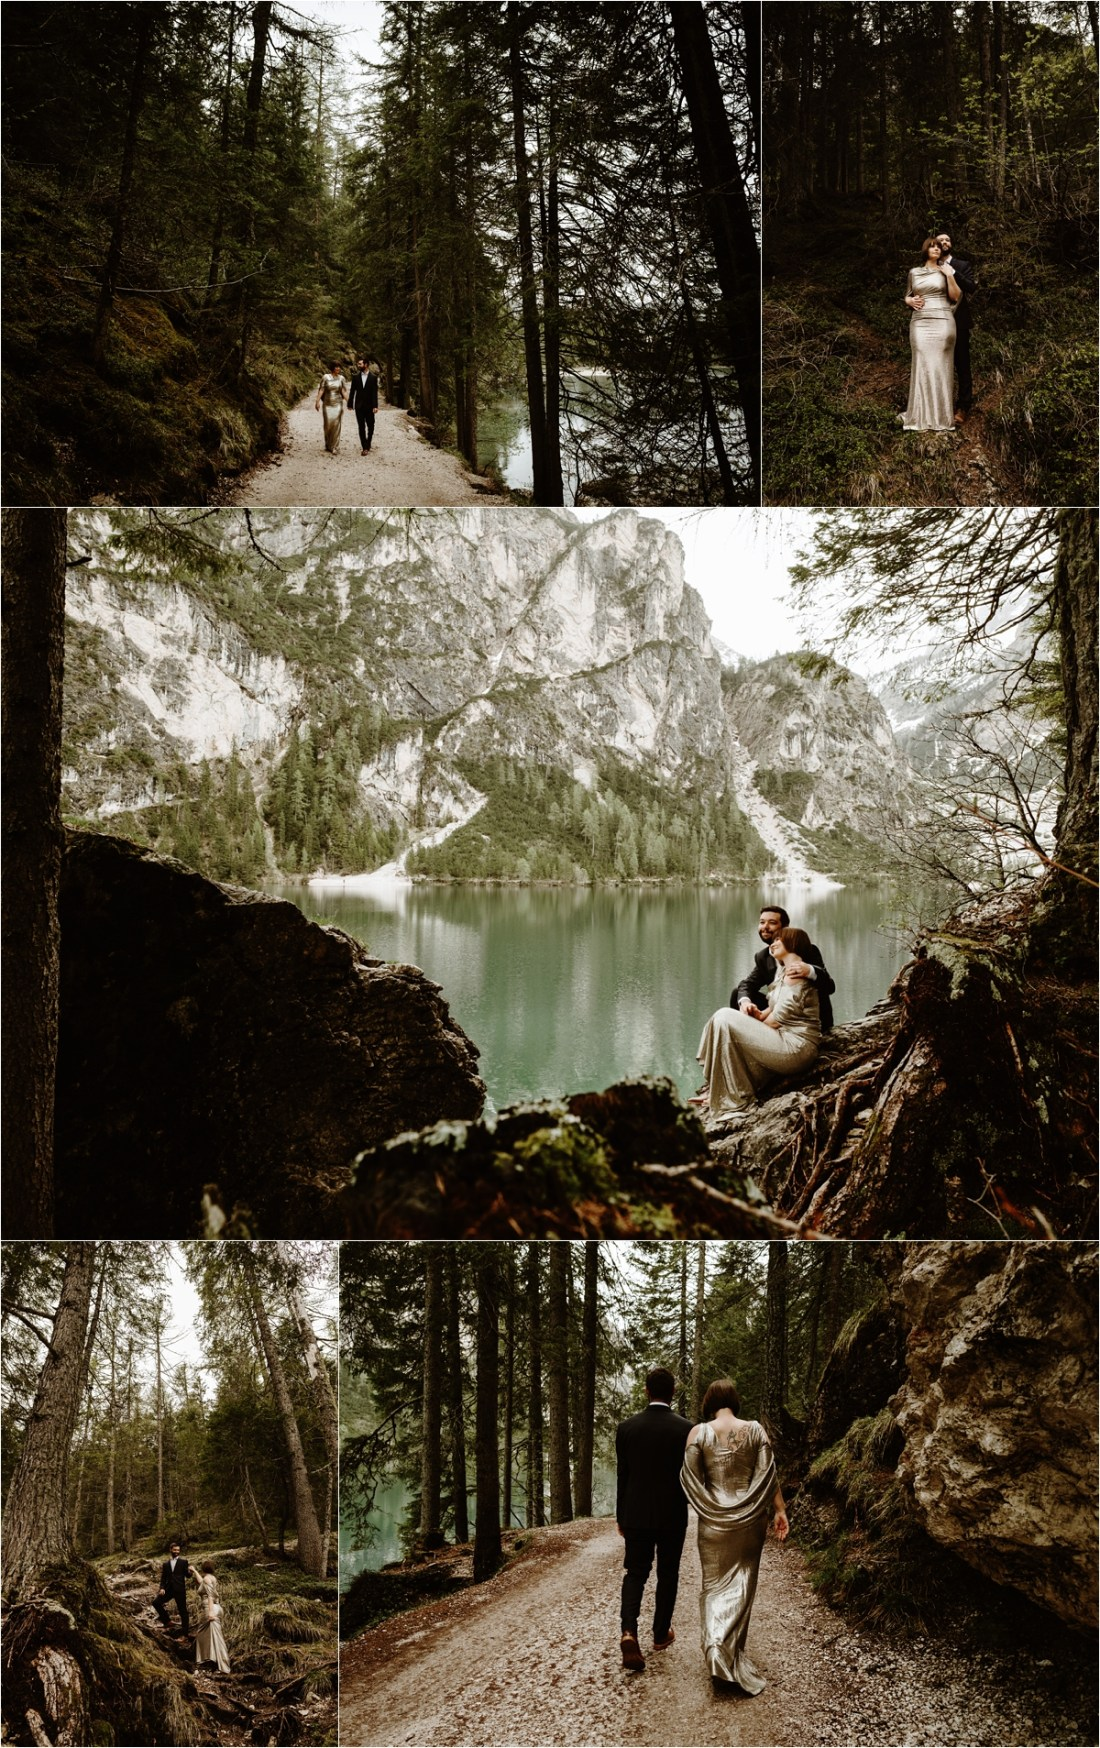 Hiking around Lake Braies in the Italian Alps, Laurel & Dustin explore the forests around the lake for their post-wedding adventure session. Photo by Wild Connections Photography